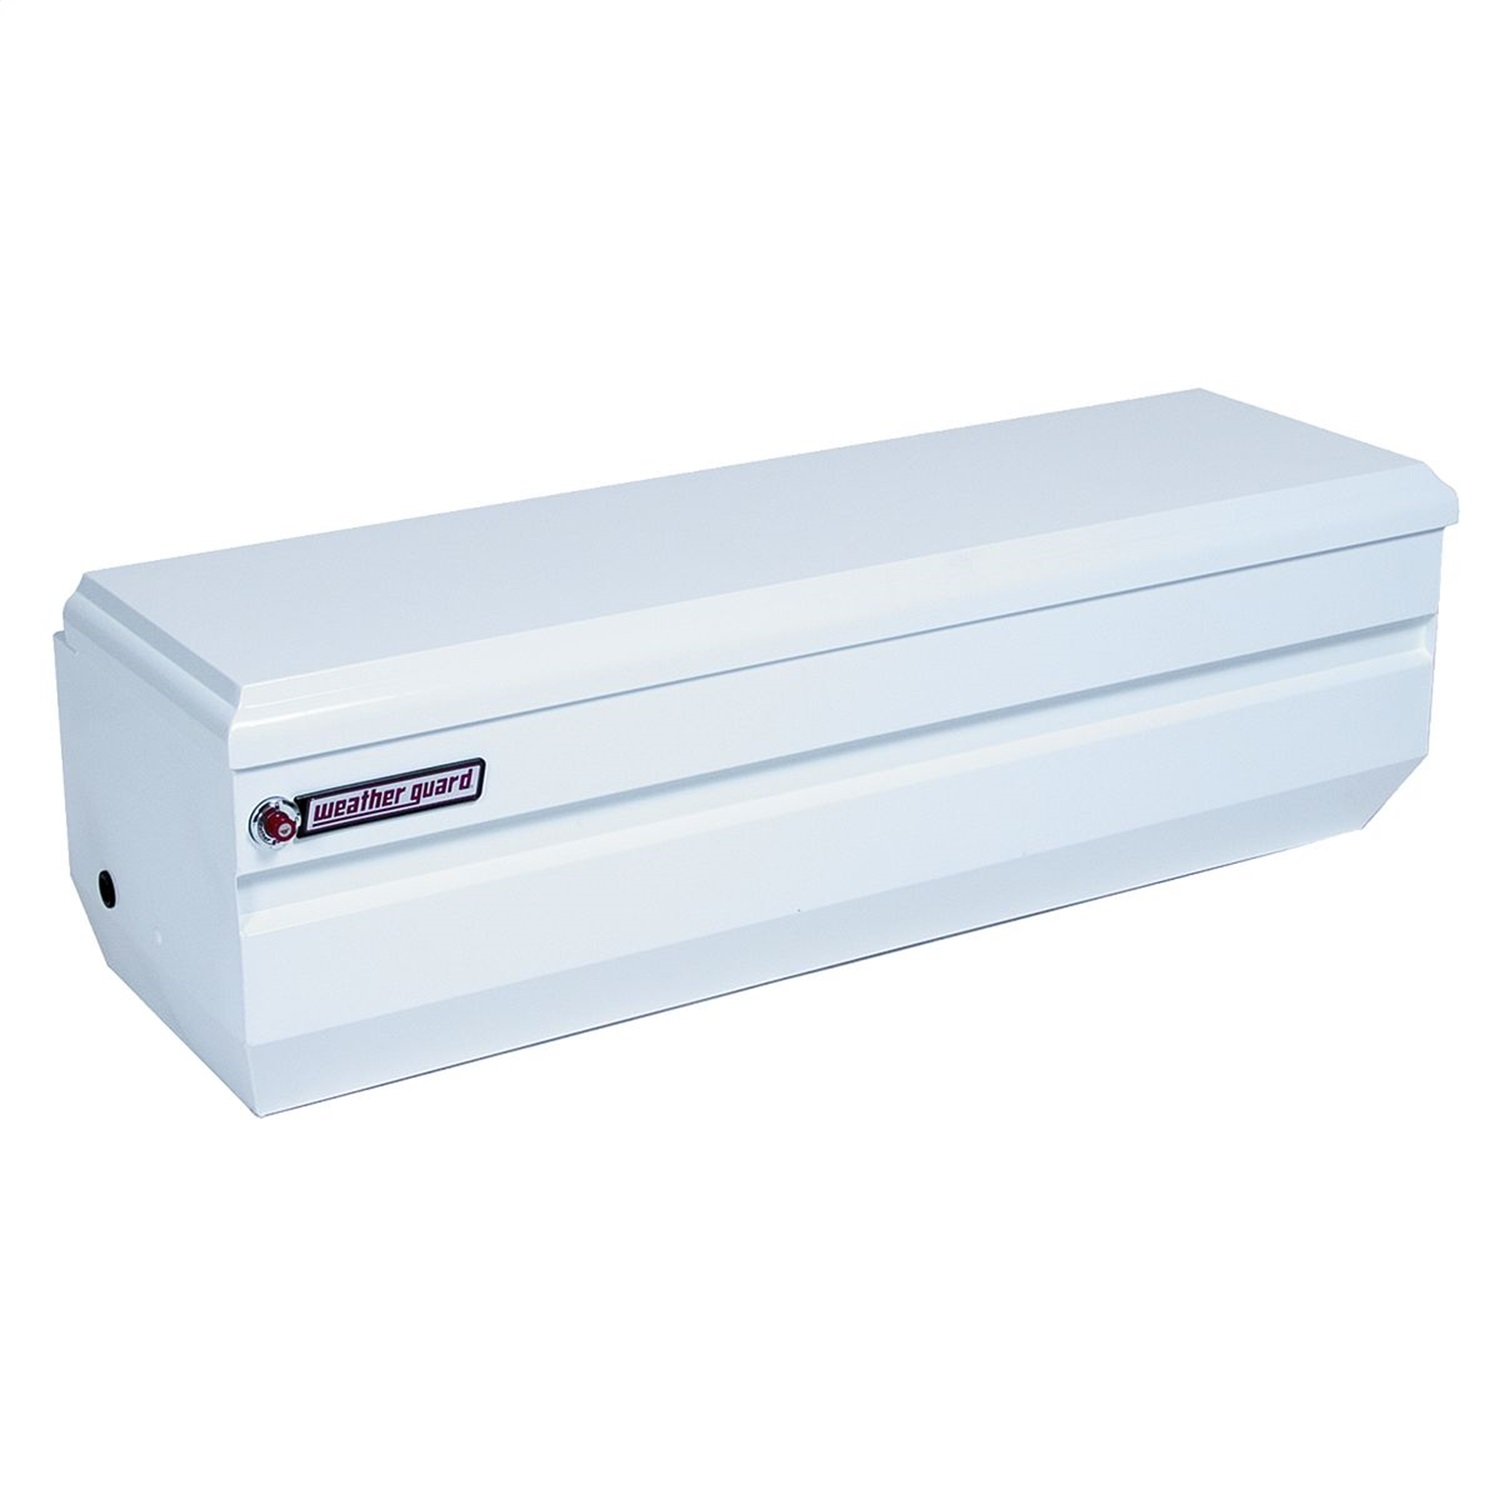 All Purpose Chest, 13.1 ft., Height 19.25 in., Length 62 in., Width 20 in., White, Heavy Duty Welded, Steel